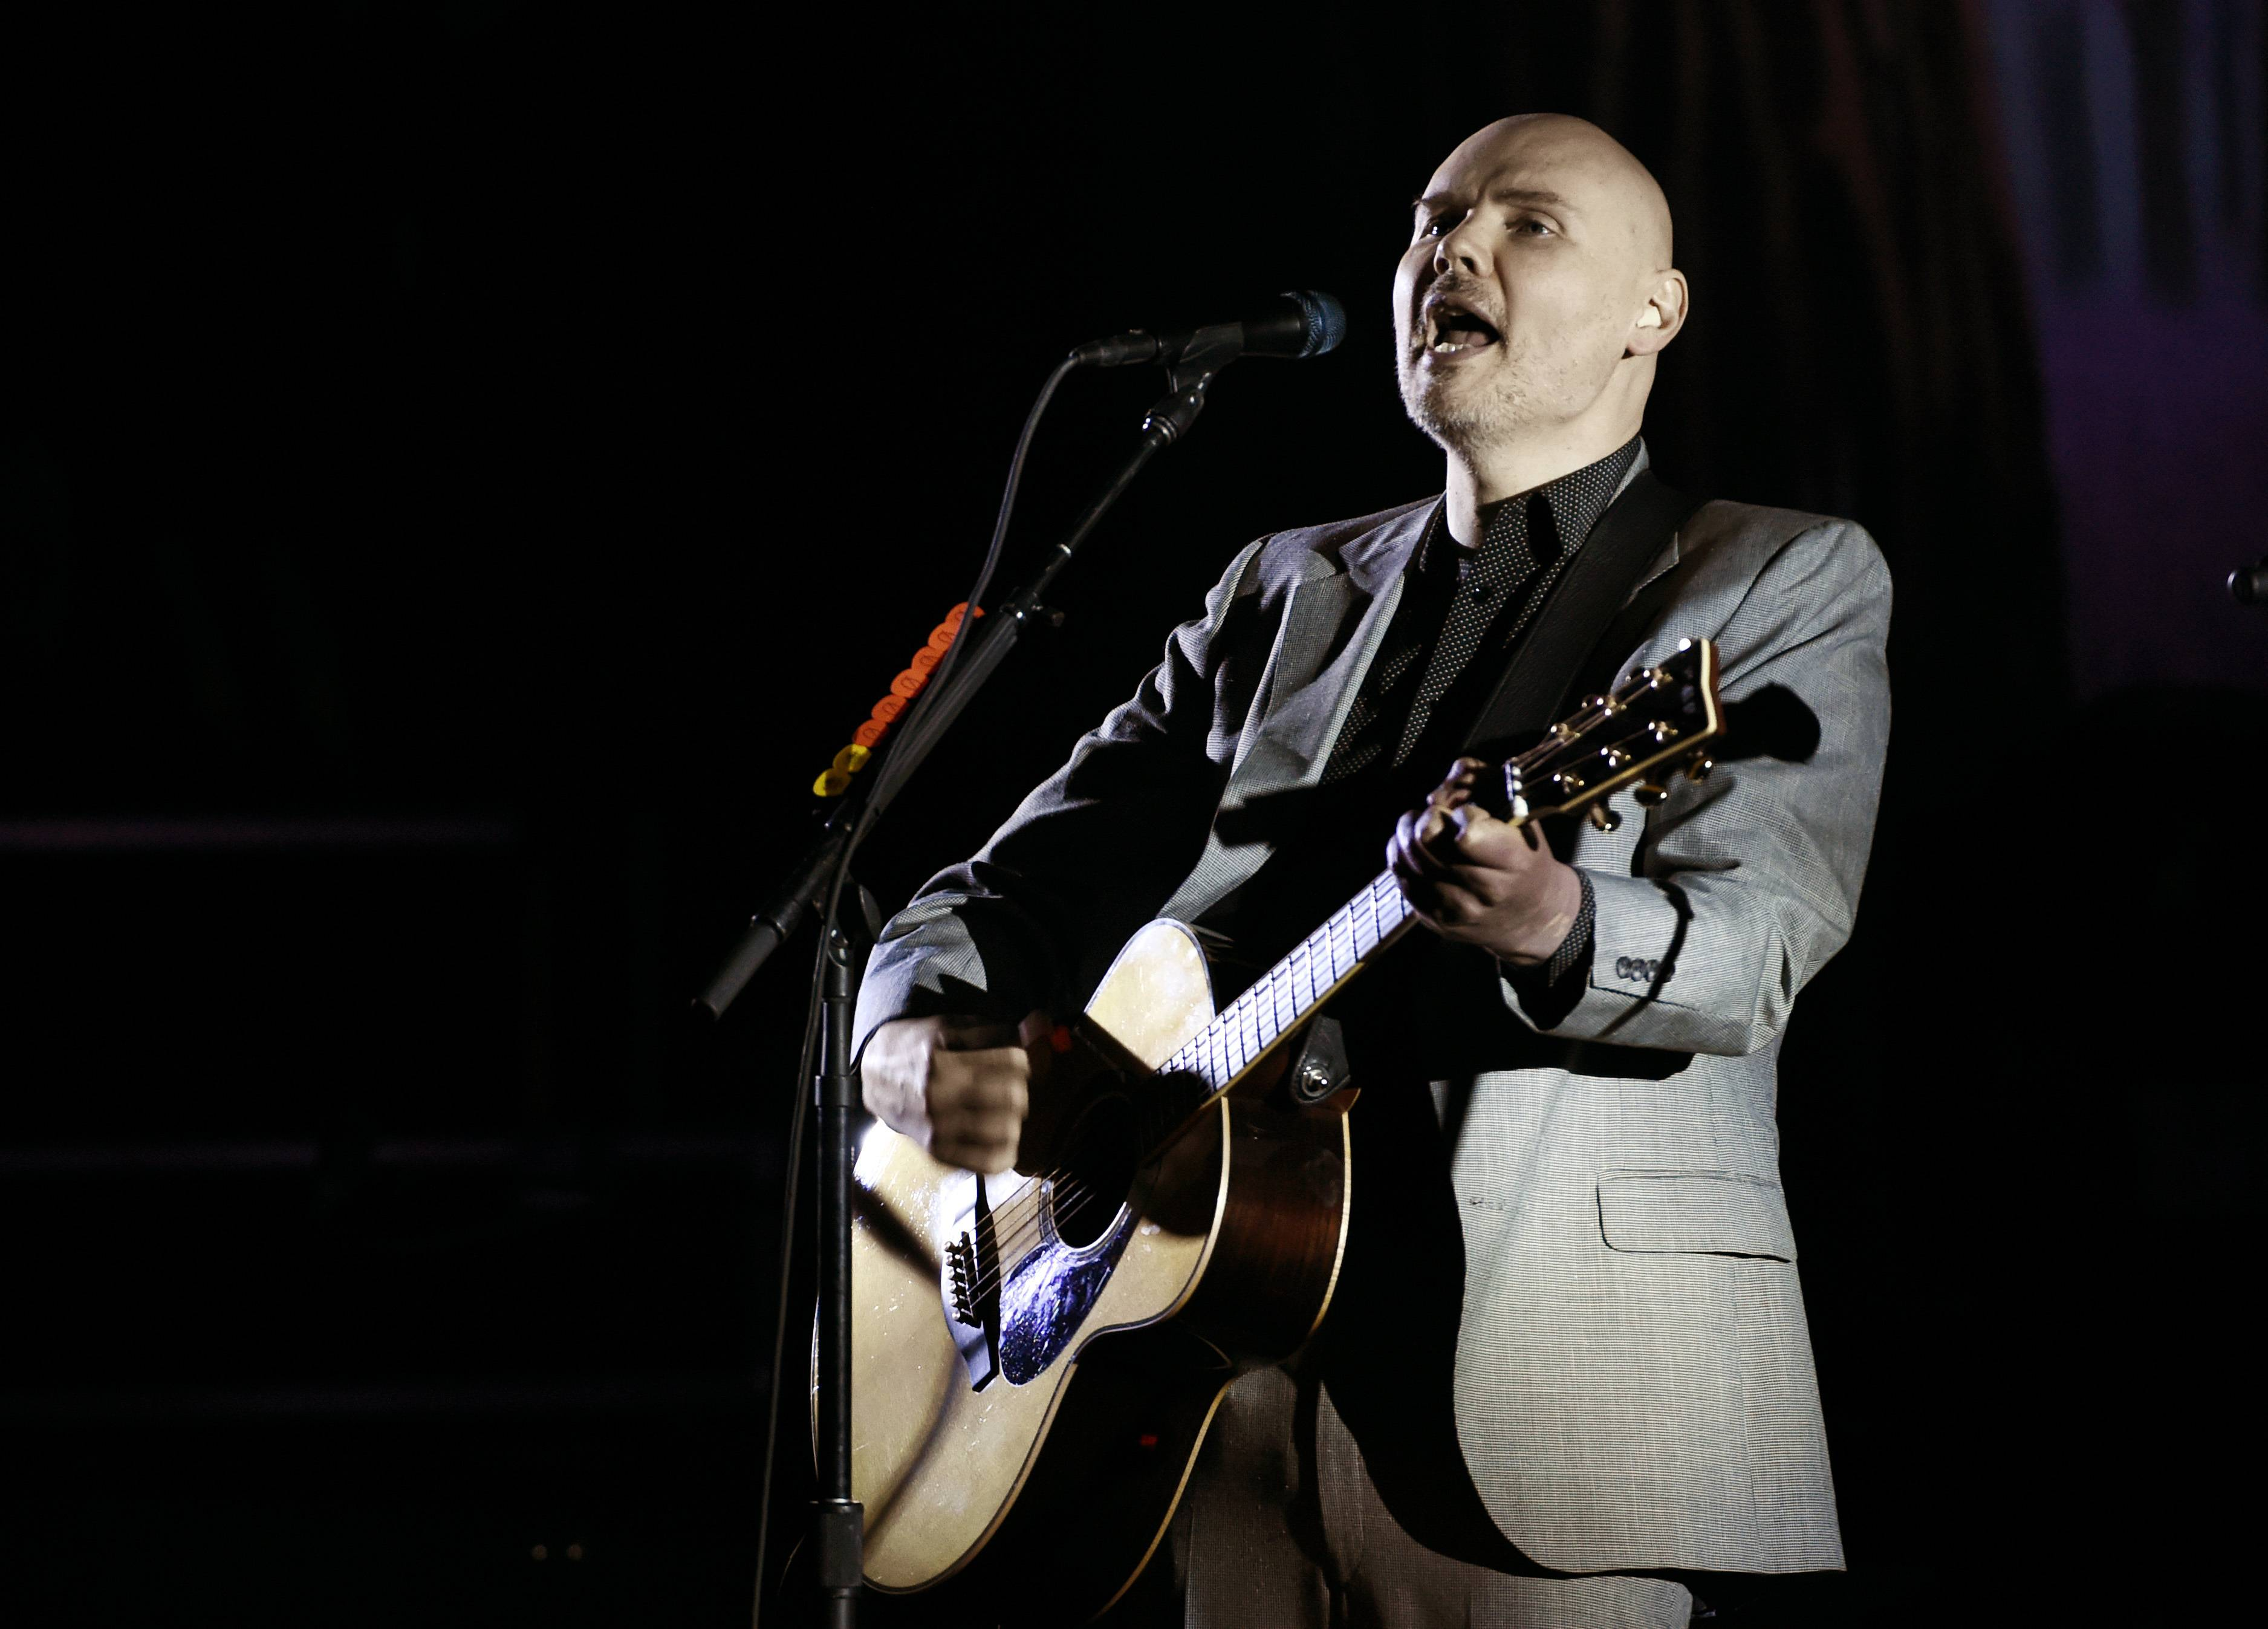 Frontman Billy Corgan will tour with original Smashing Pumpkins bandmates James Iha and Jimmy Chamberlain for the first time since 2000. The tour will play the United Center Aug. 13.